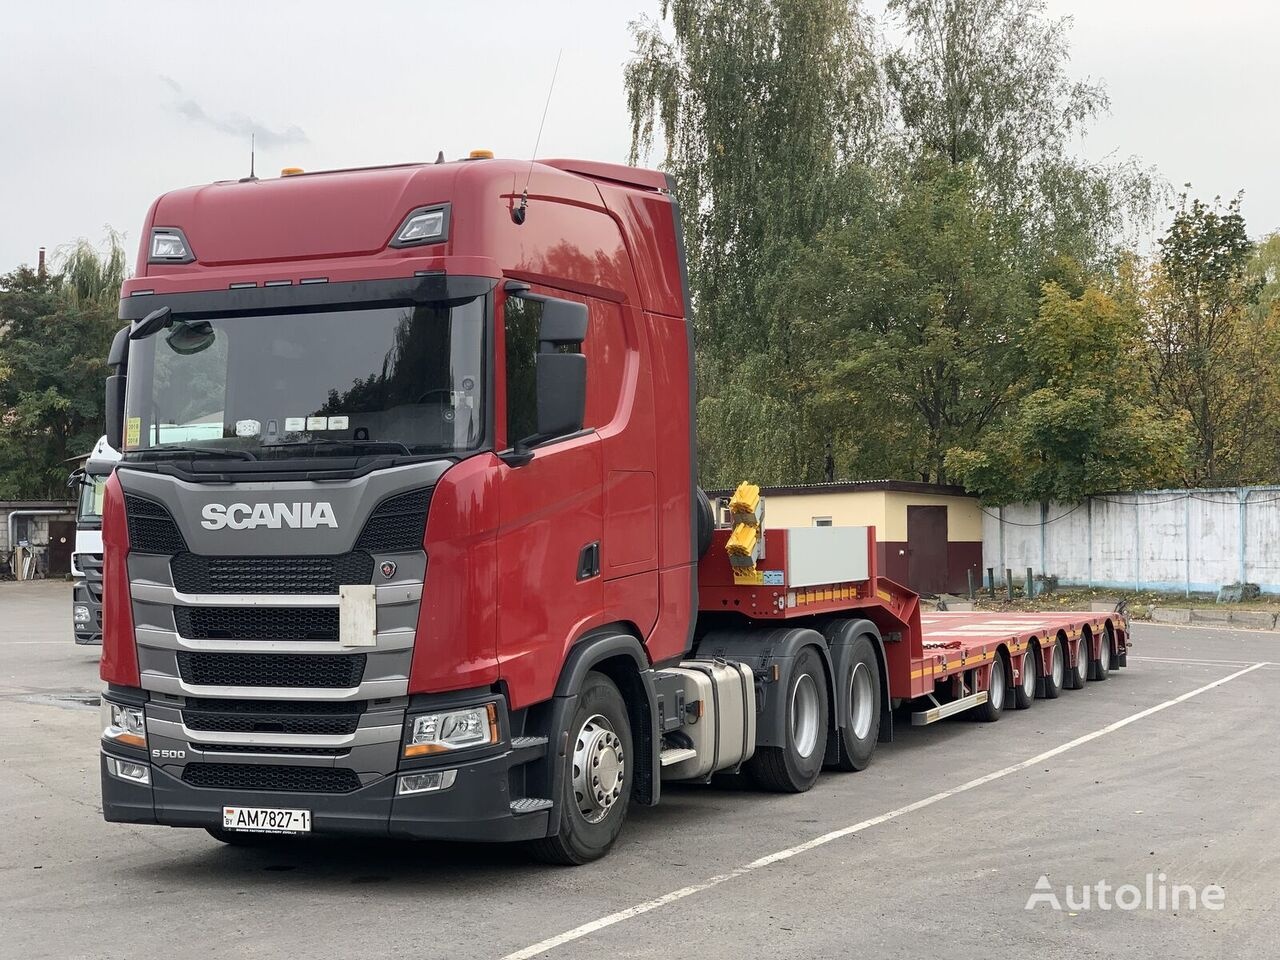 SCANIA S-series 6x4 tractor unit + low bed semi-trailer